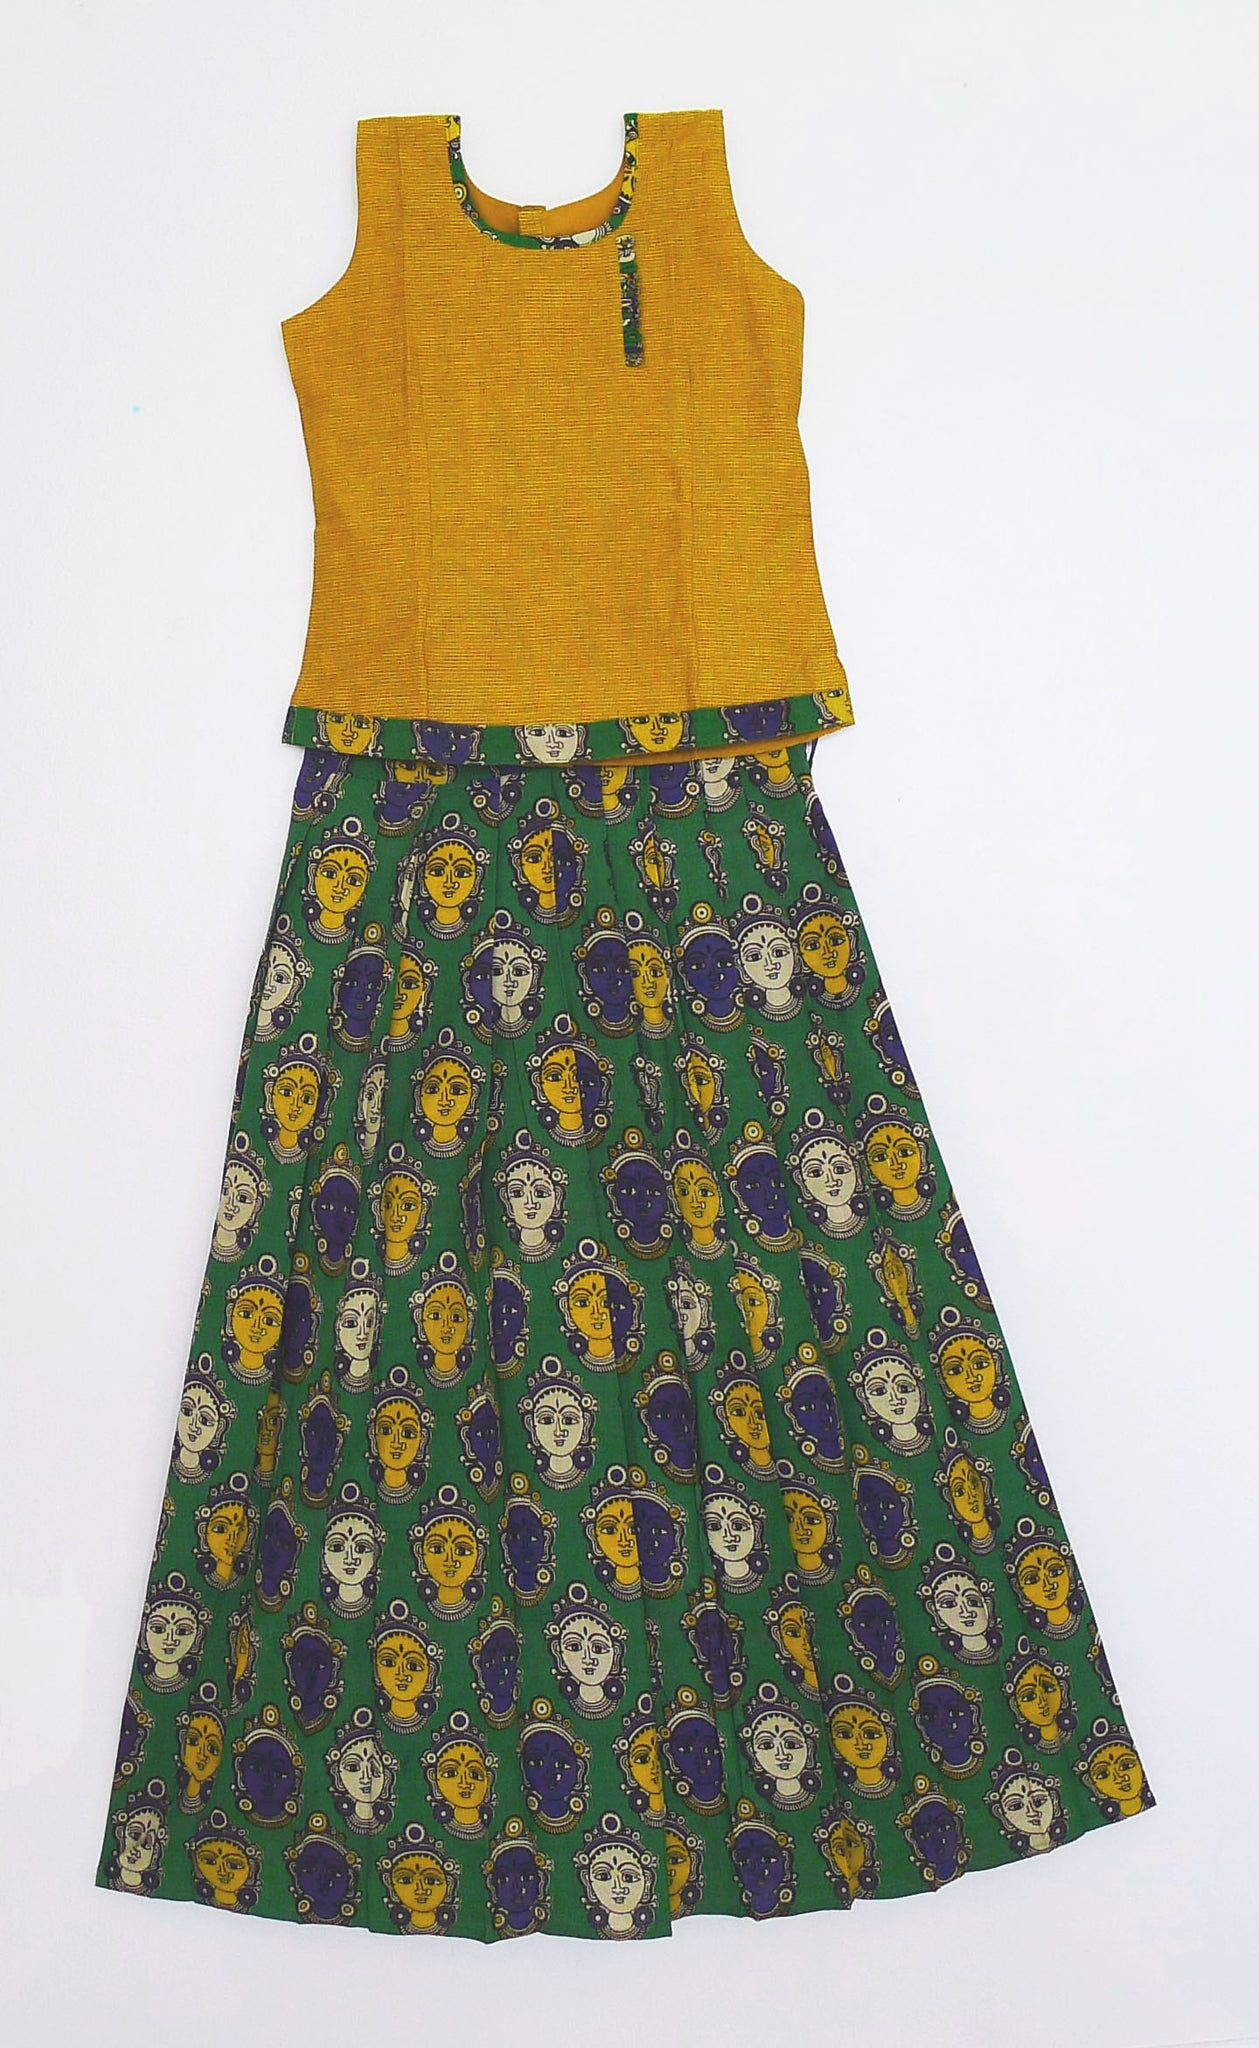 Kalamkari Top & Skirt 14 - 15 Year Old